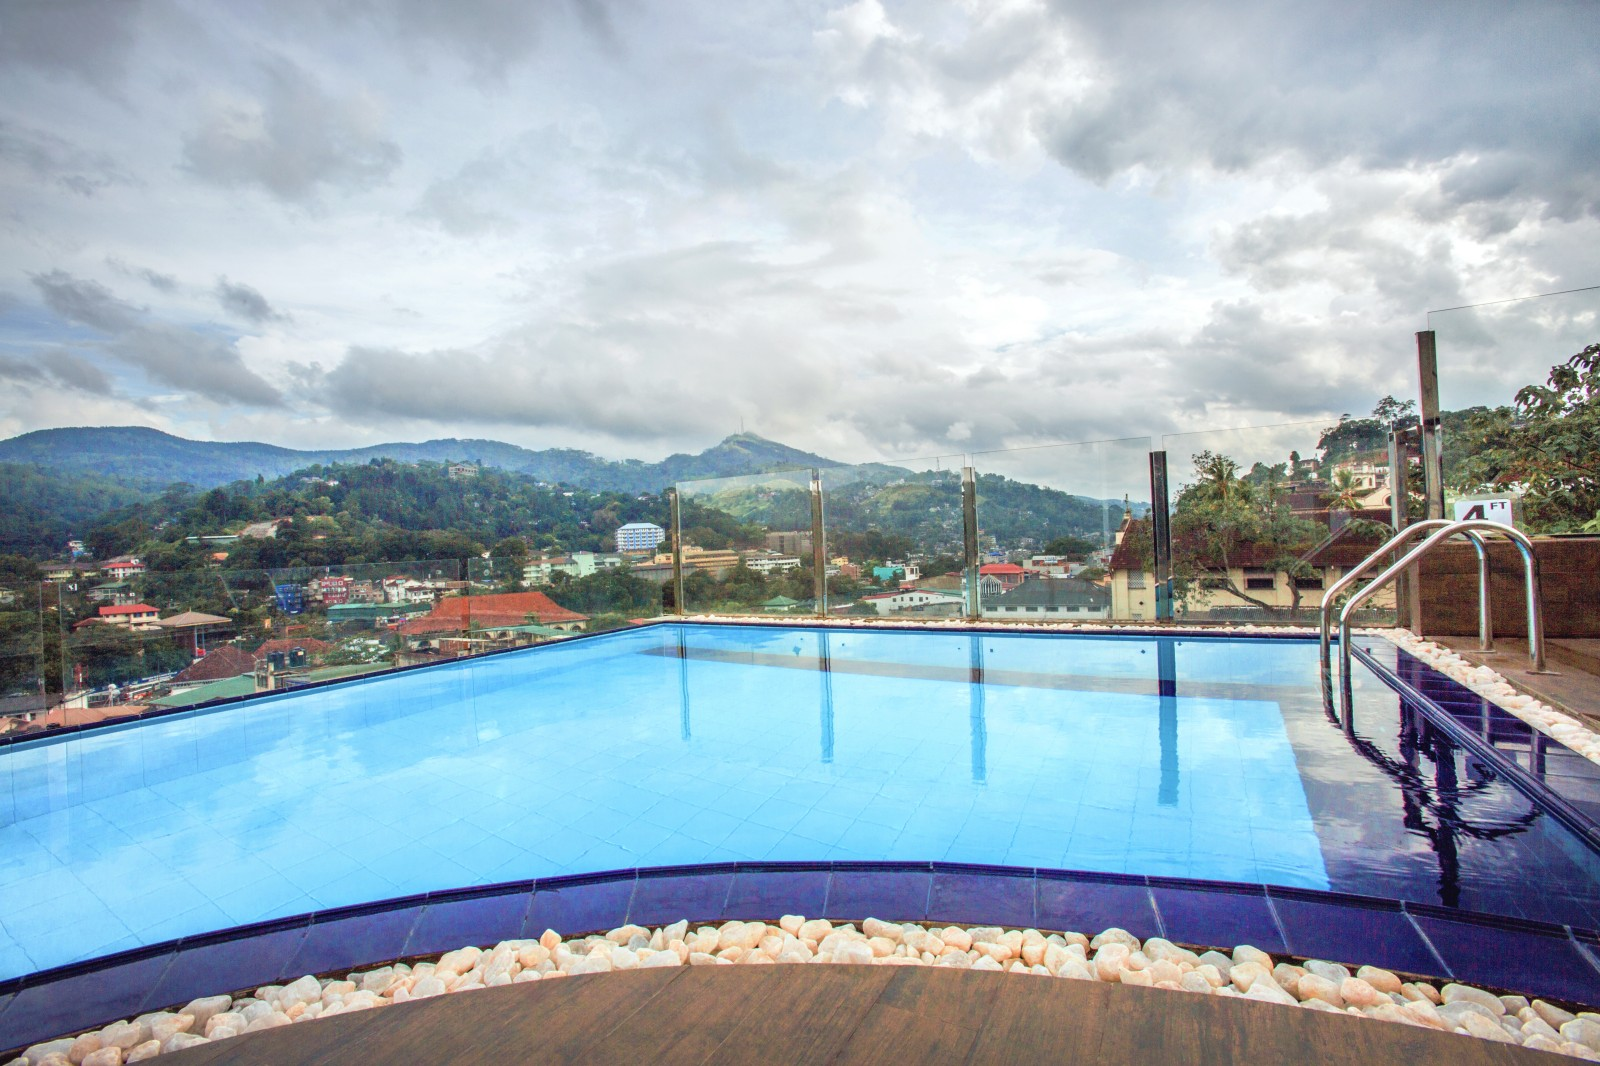 Rooftop pool, Kandy Sri Lanka